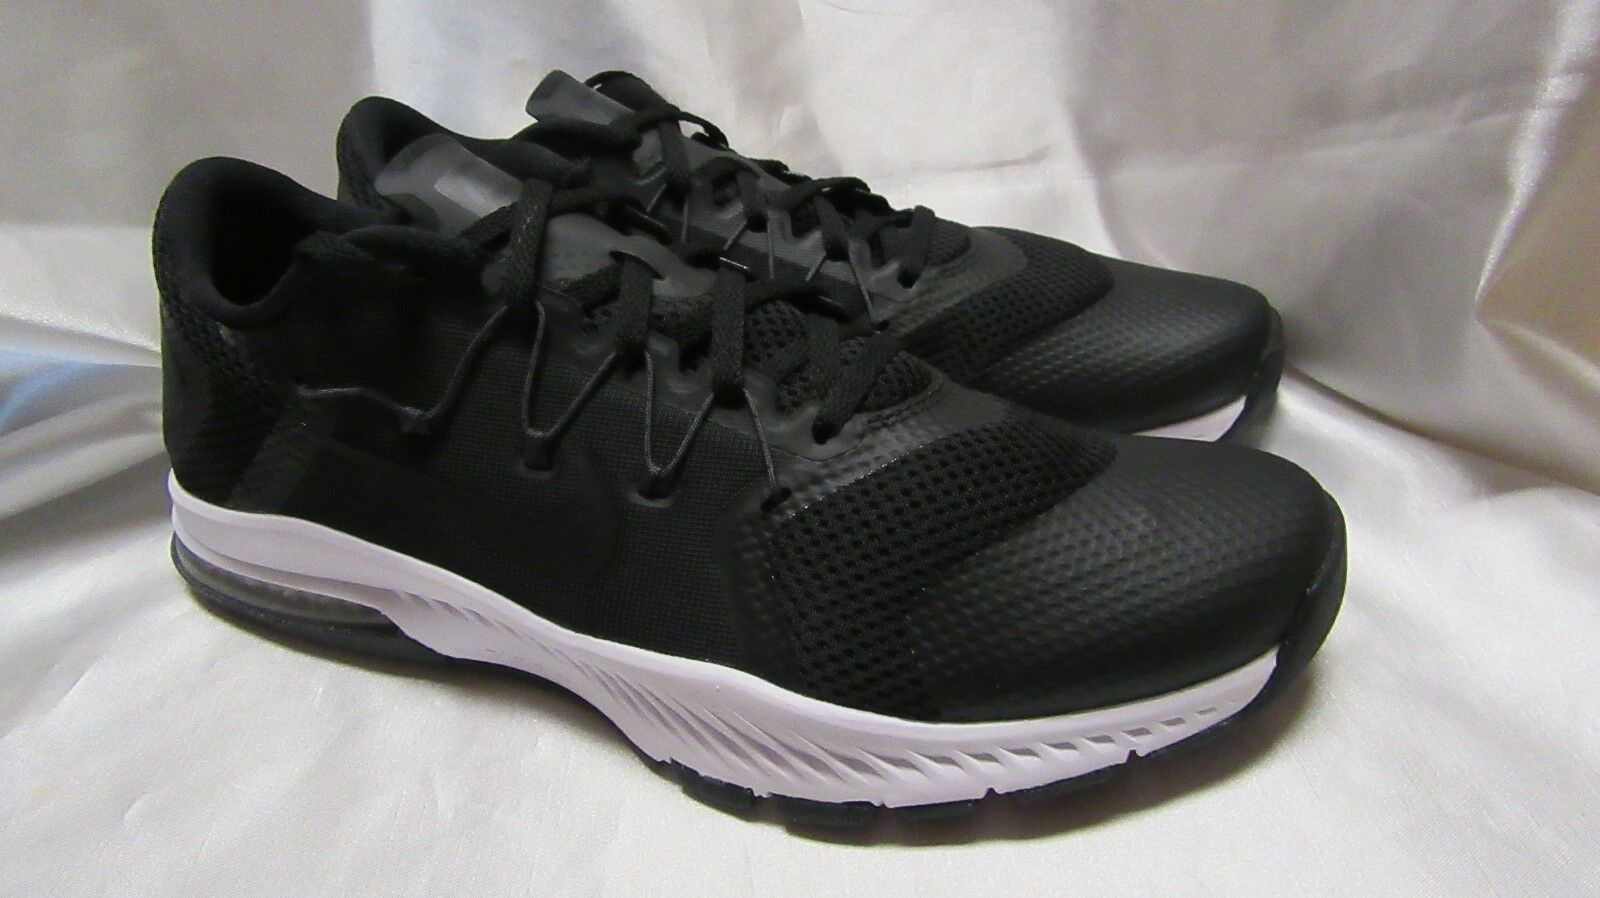 MEN`S NIKE ZOOM TRAIN COMPLETE ATHLETIC SNEAKERS SIZE 9 M NEW BLACK